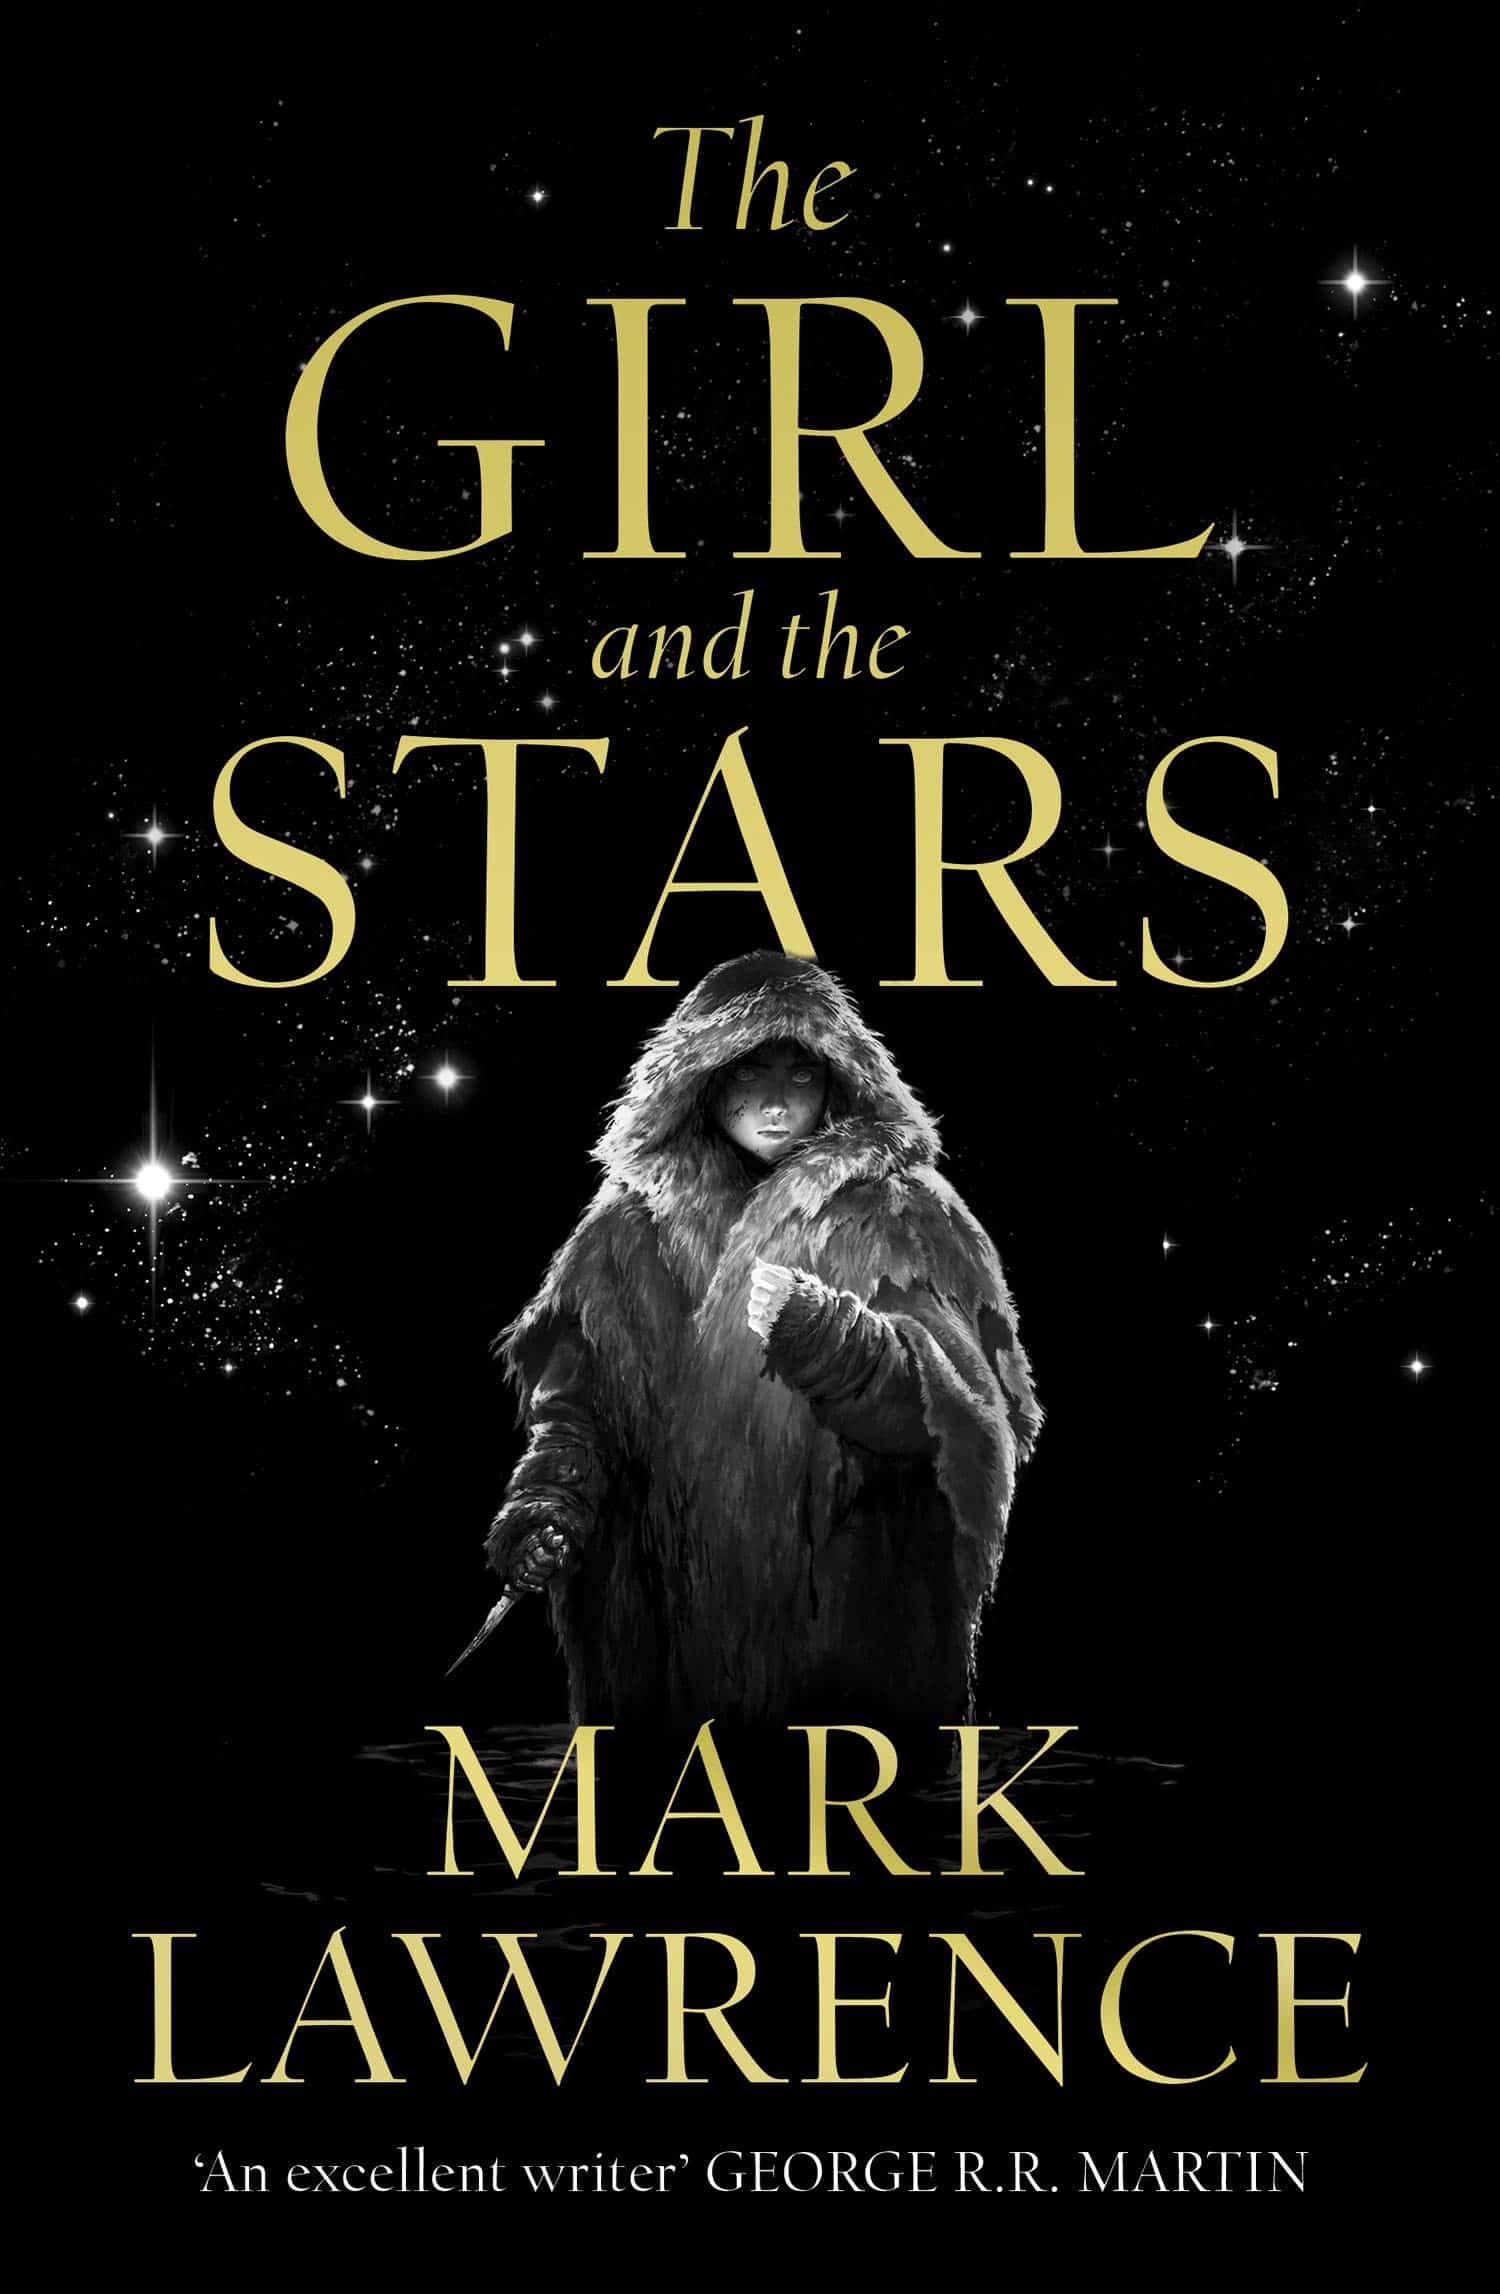 The Girl and the Stars by Mark Lawrence dark fantasy book cover